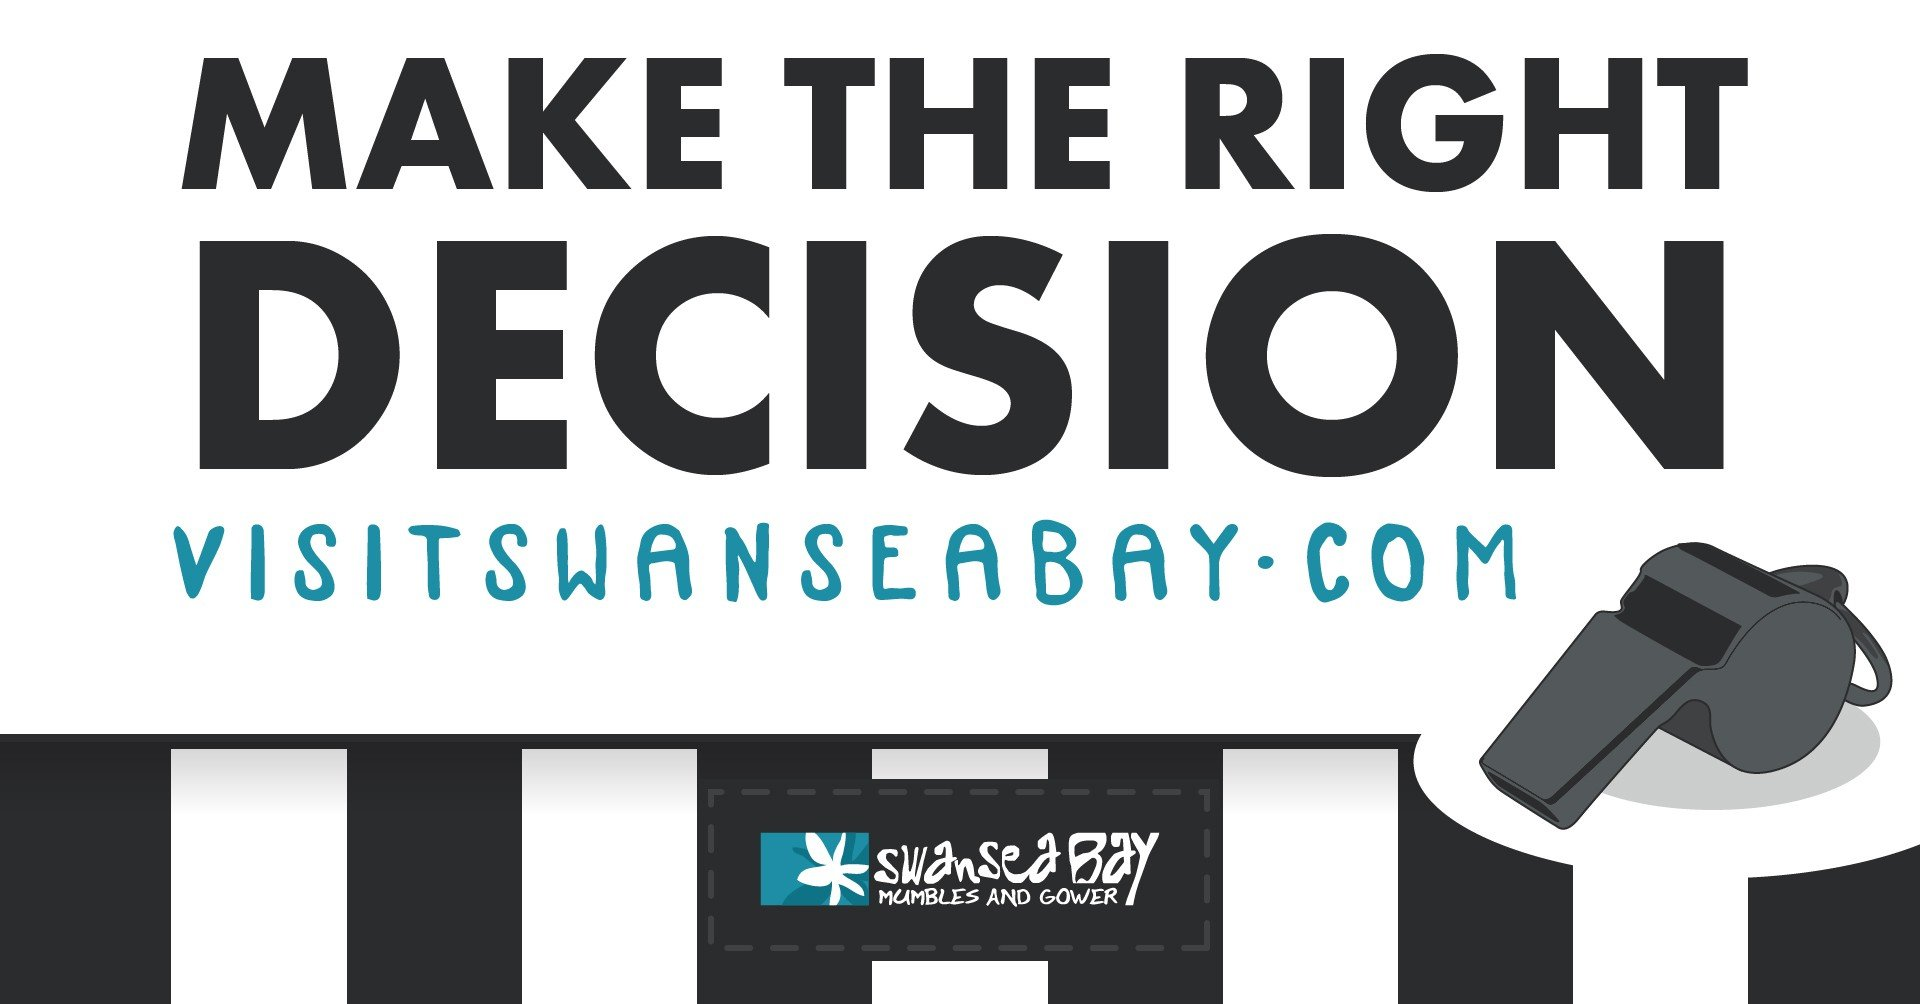 Referees, make the right decision - Visit Swansea Bay